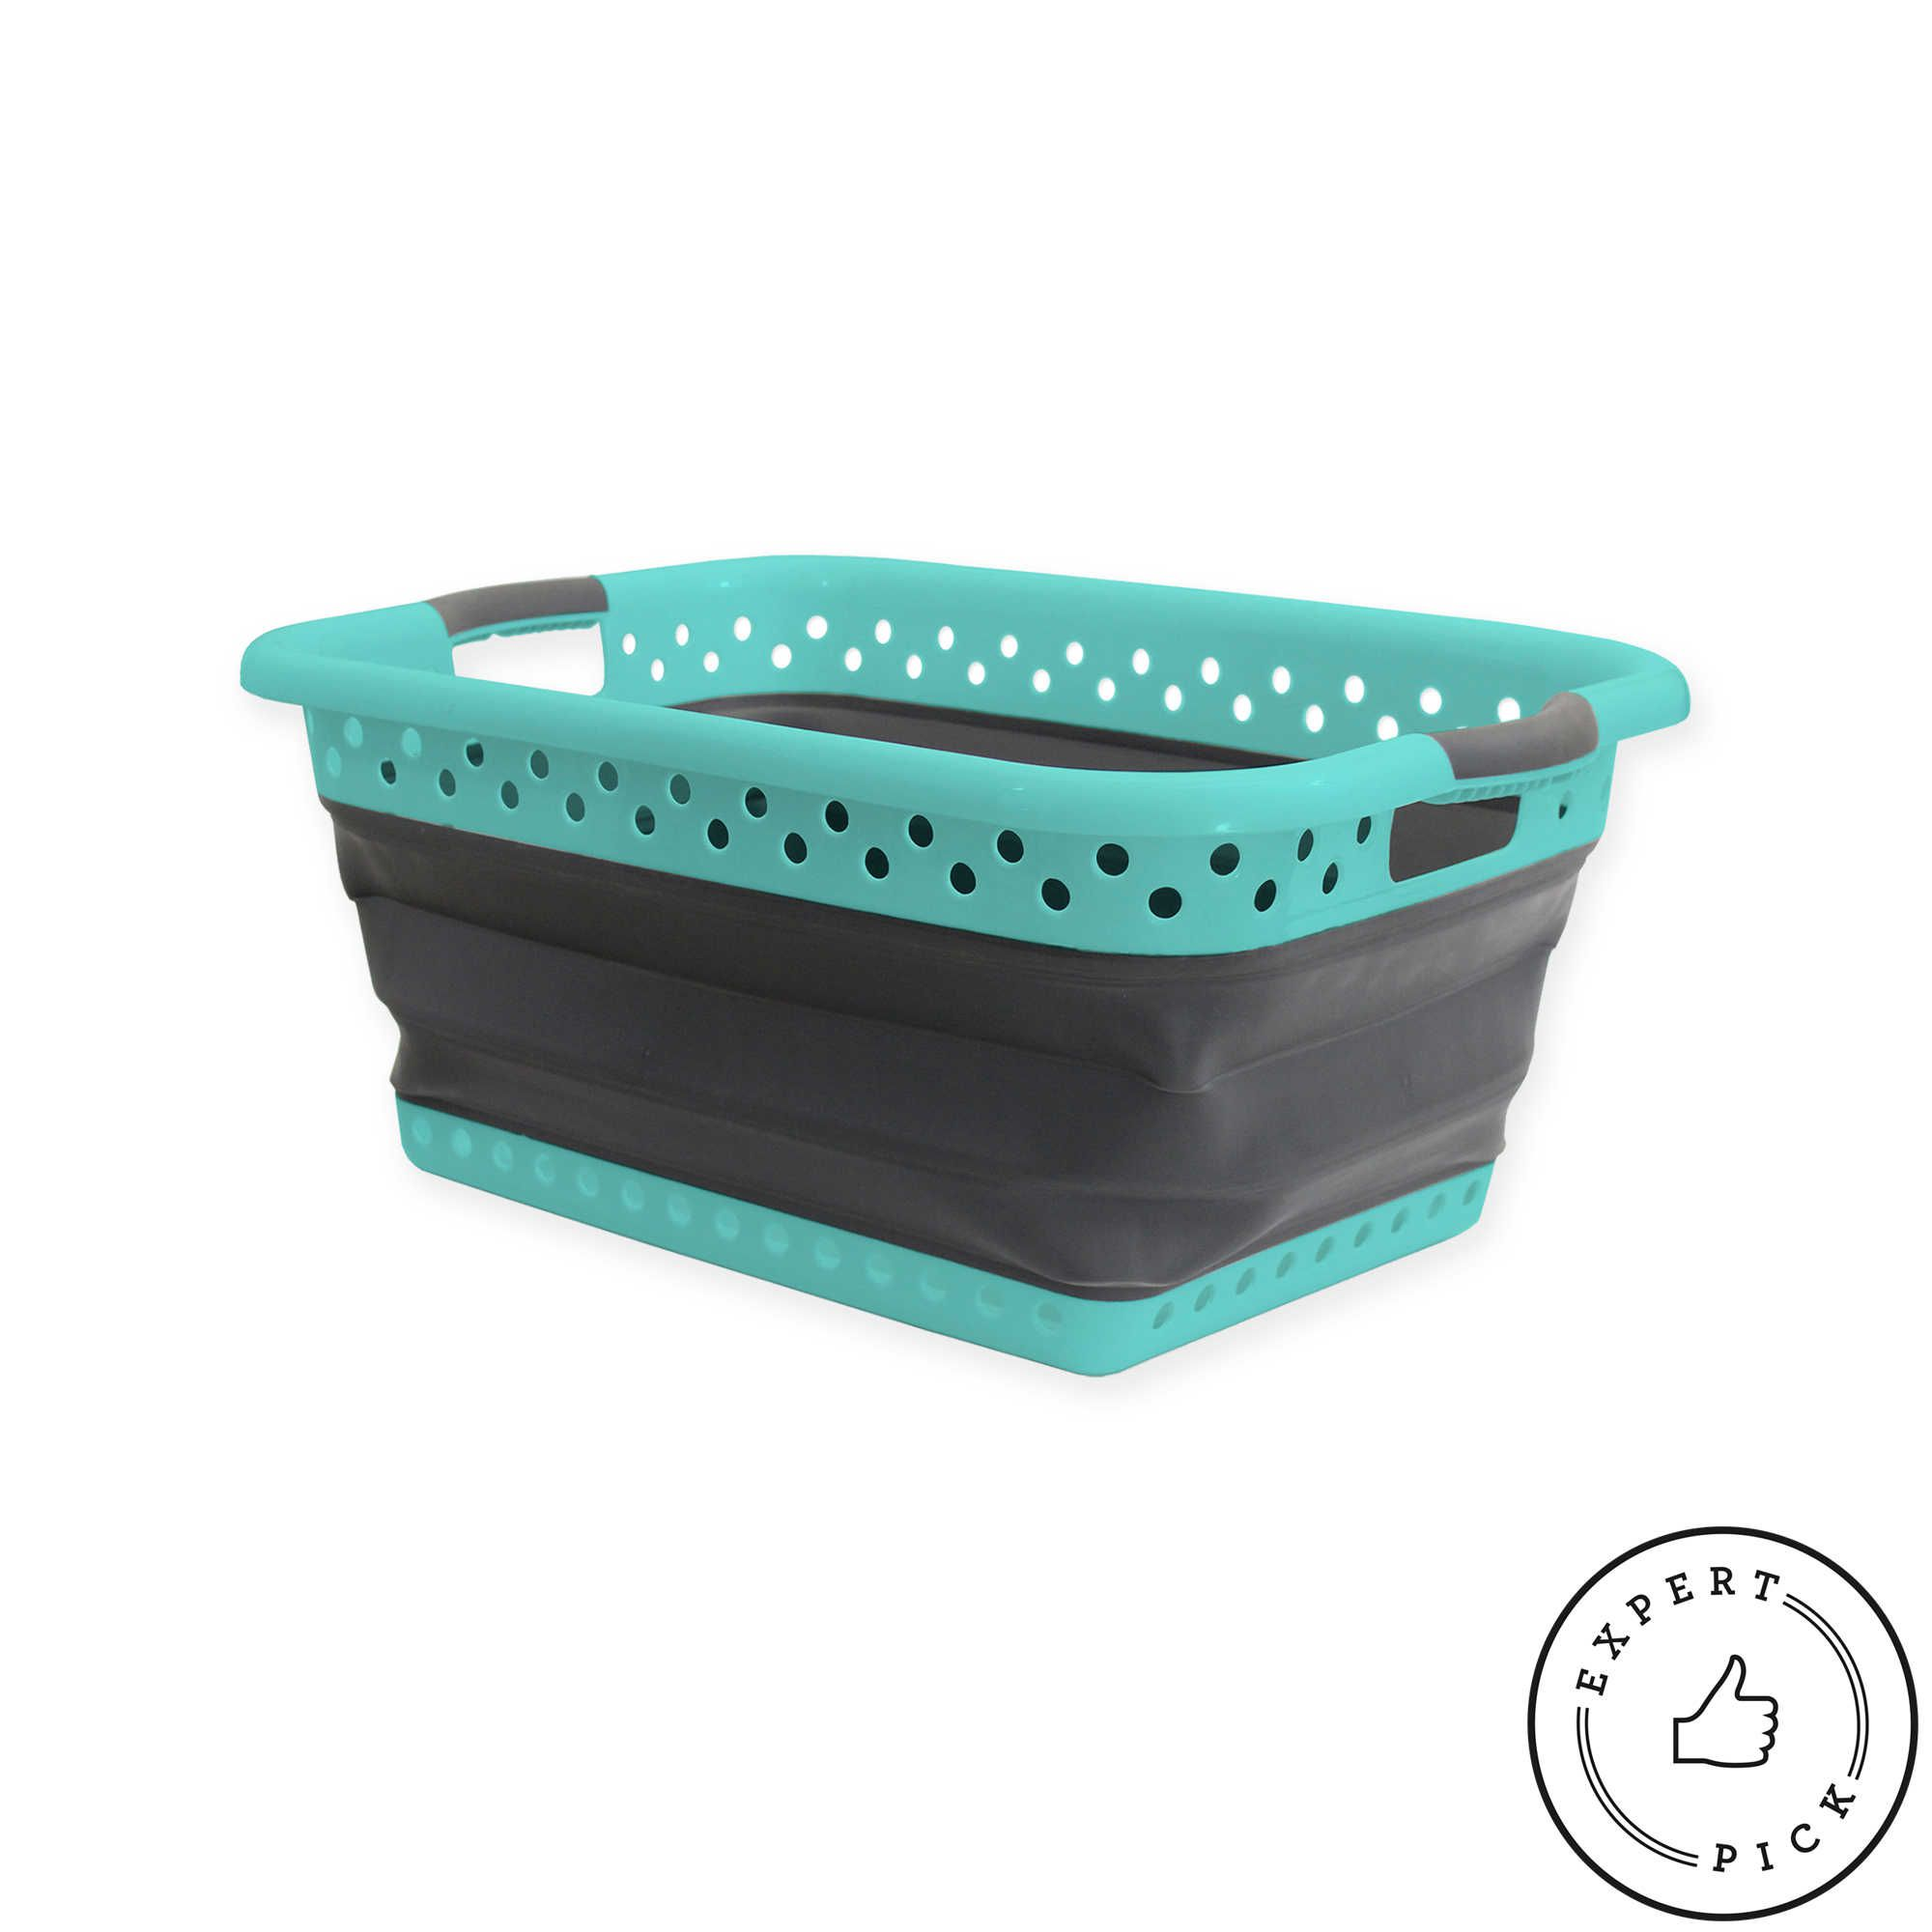 The 7 Best Laundry Baskets to Buy in 2018